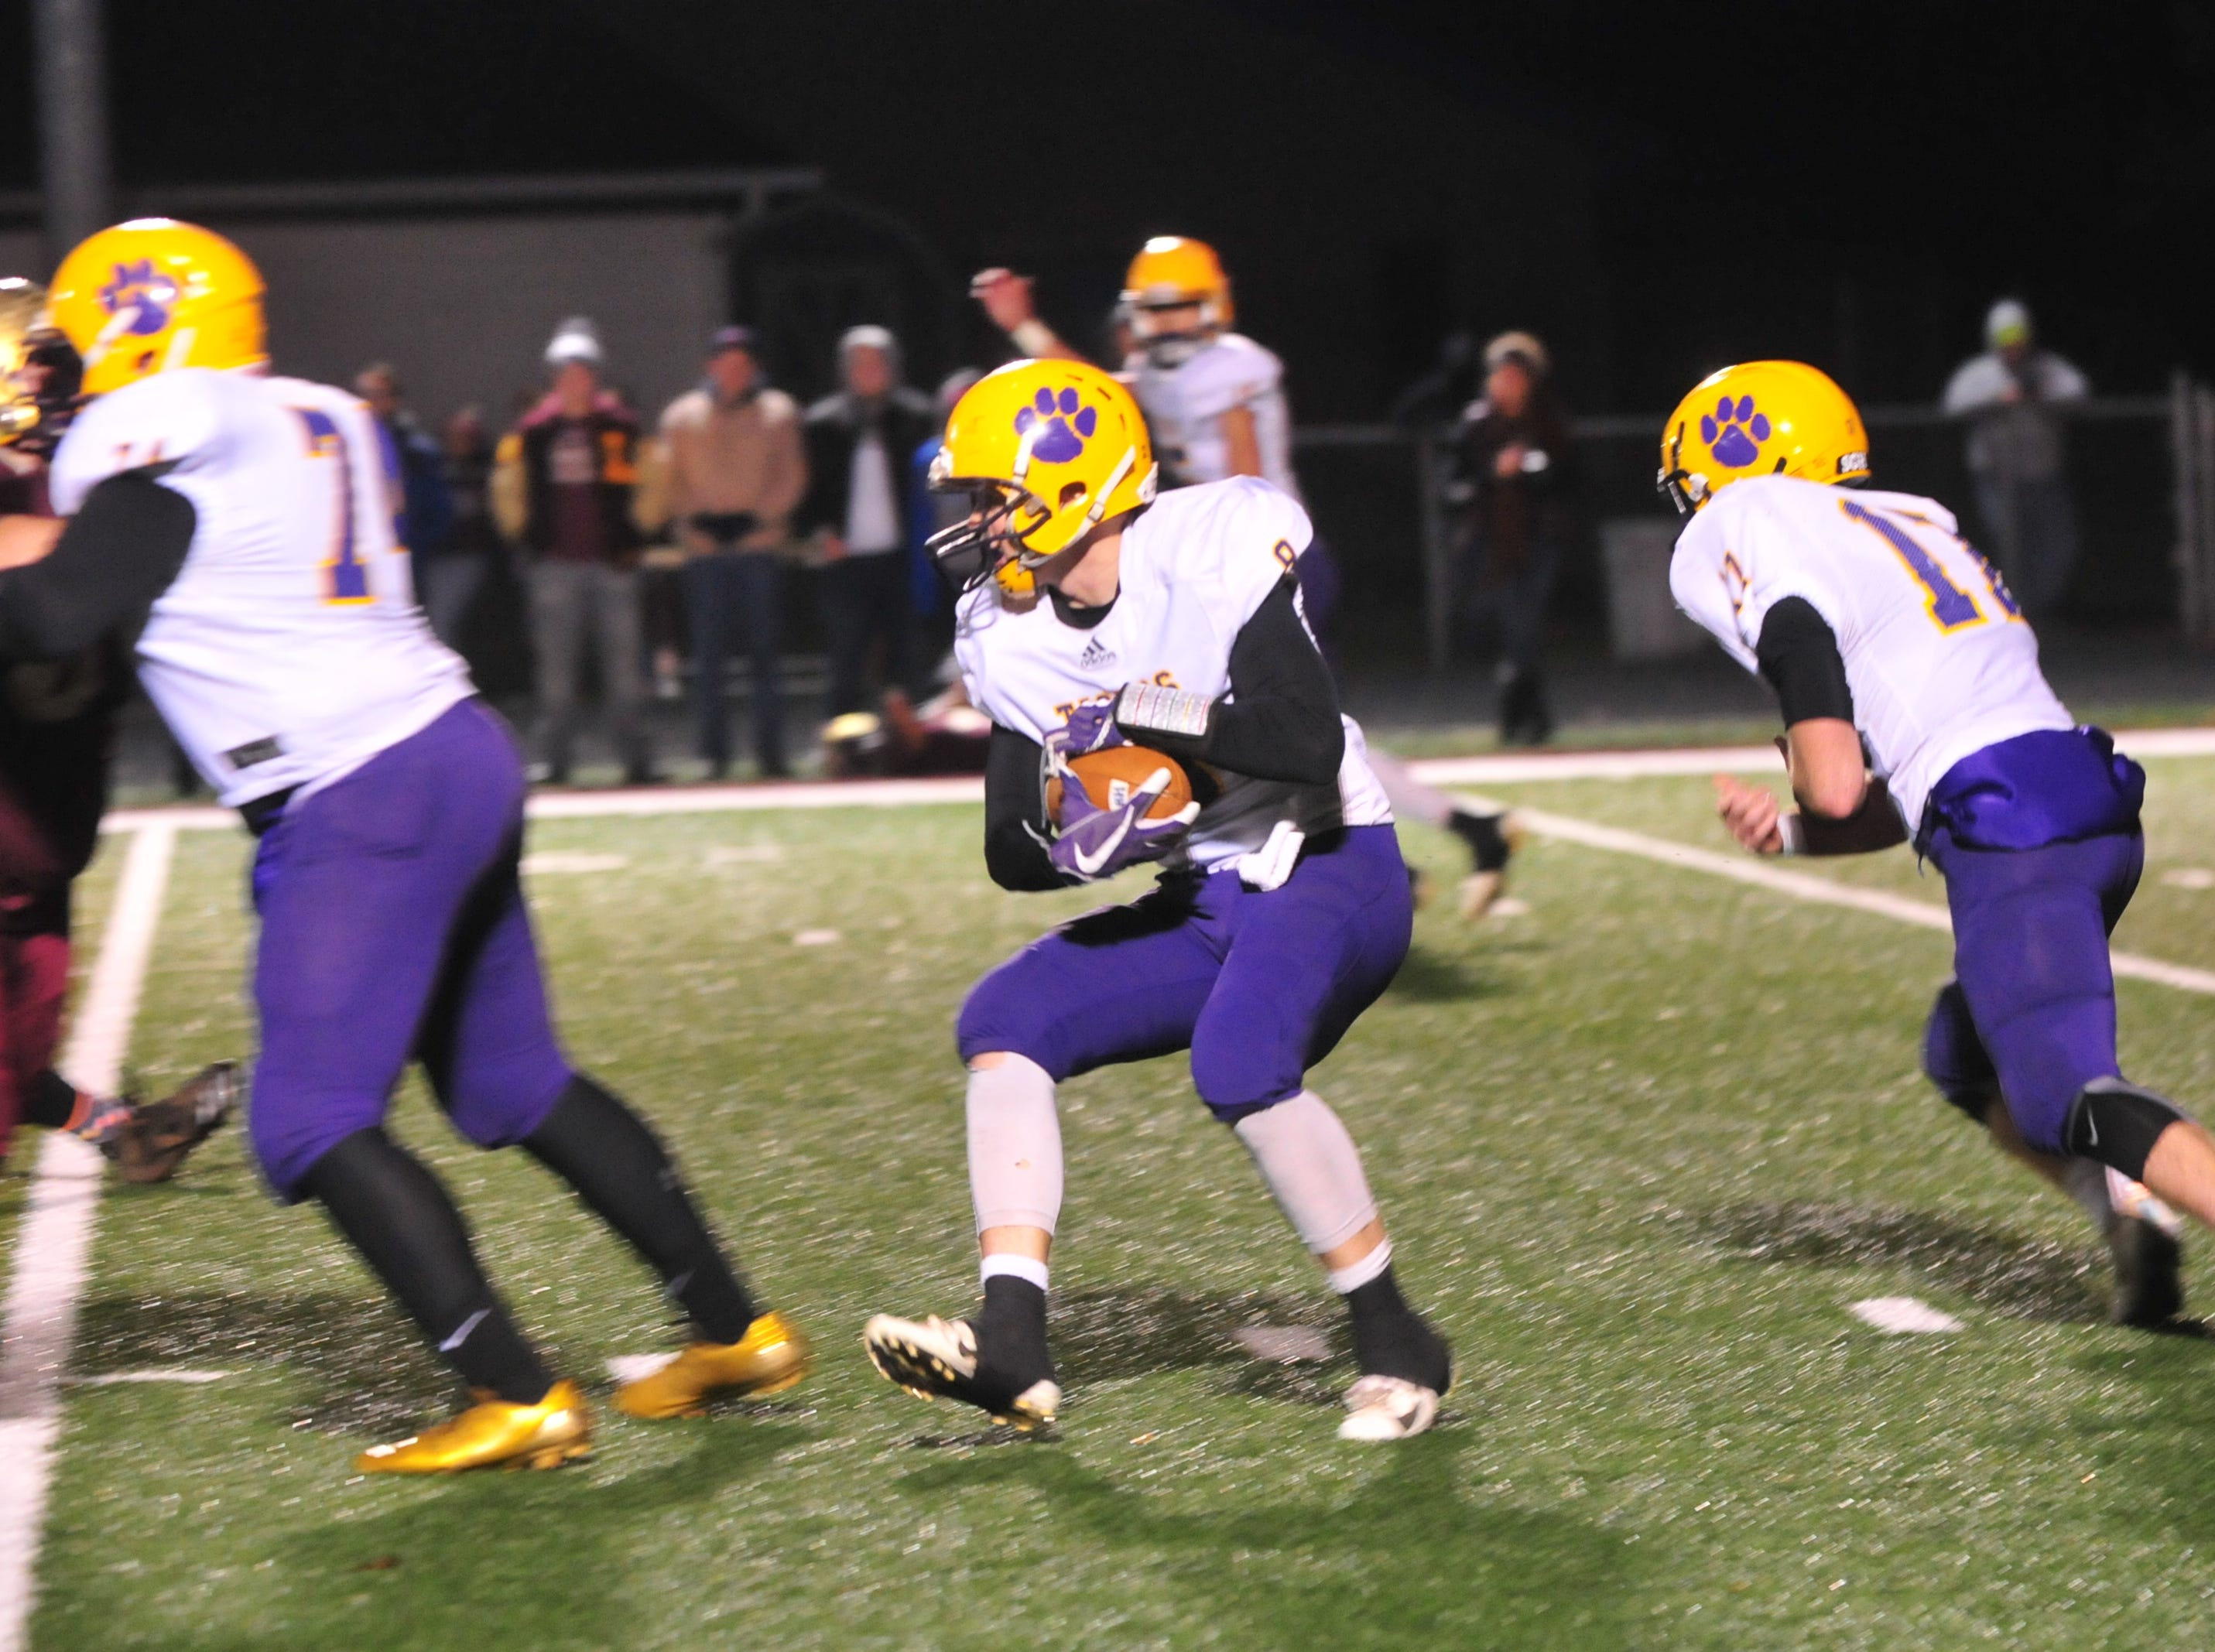 Hagerstown fell to Lutheran 32-13 in the IHSAA Class A Sectional 46 championship game Friday, Nov. 2, 2018.